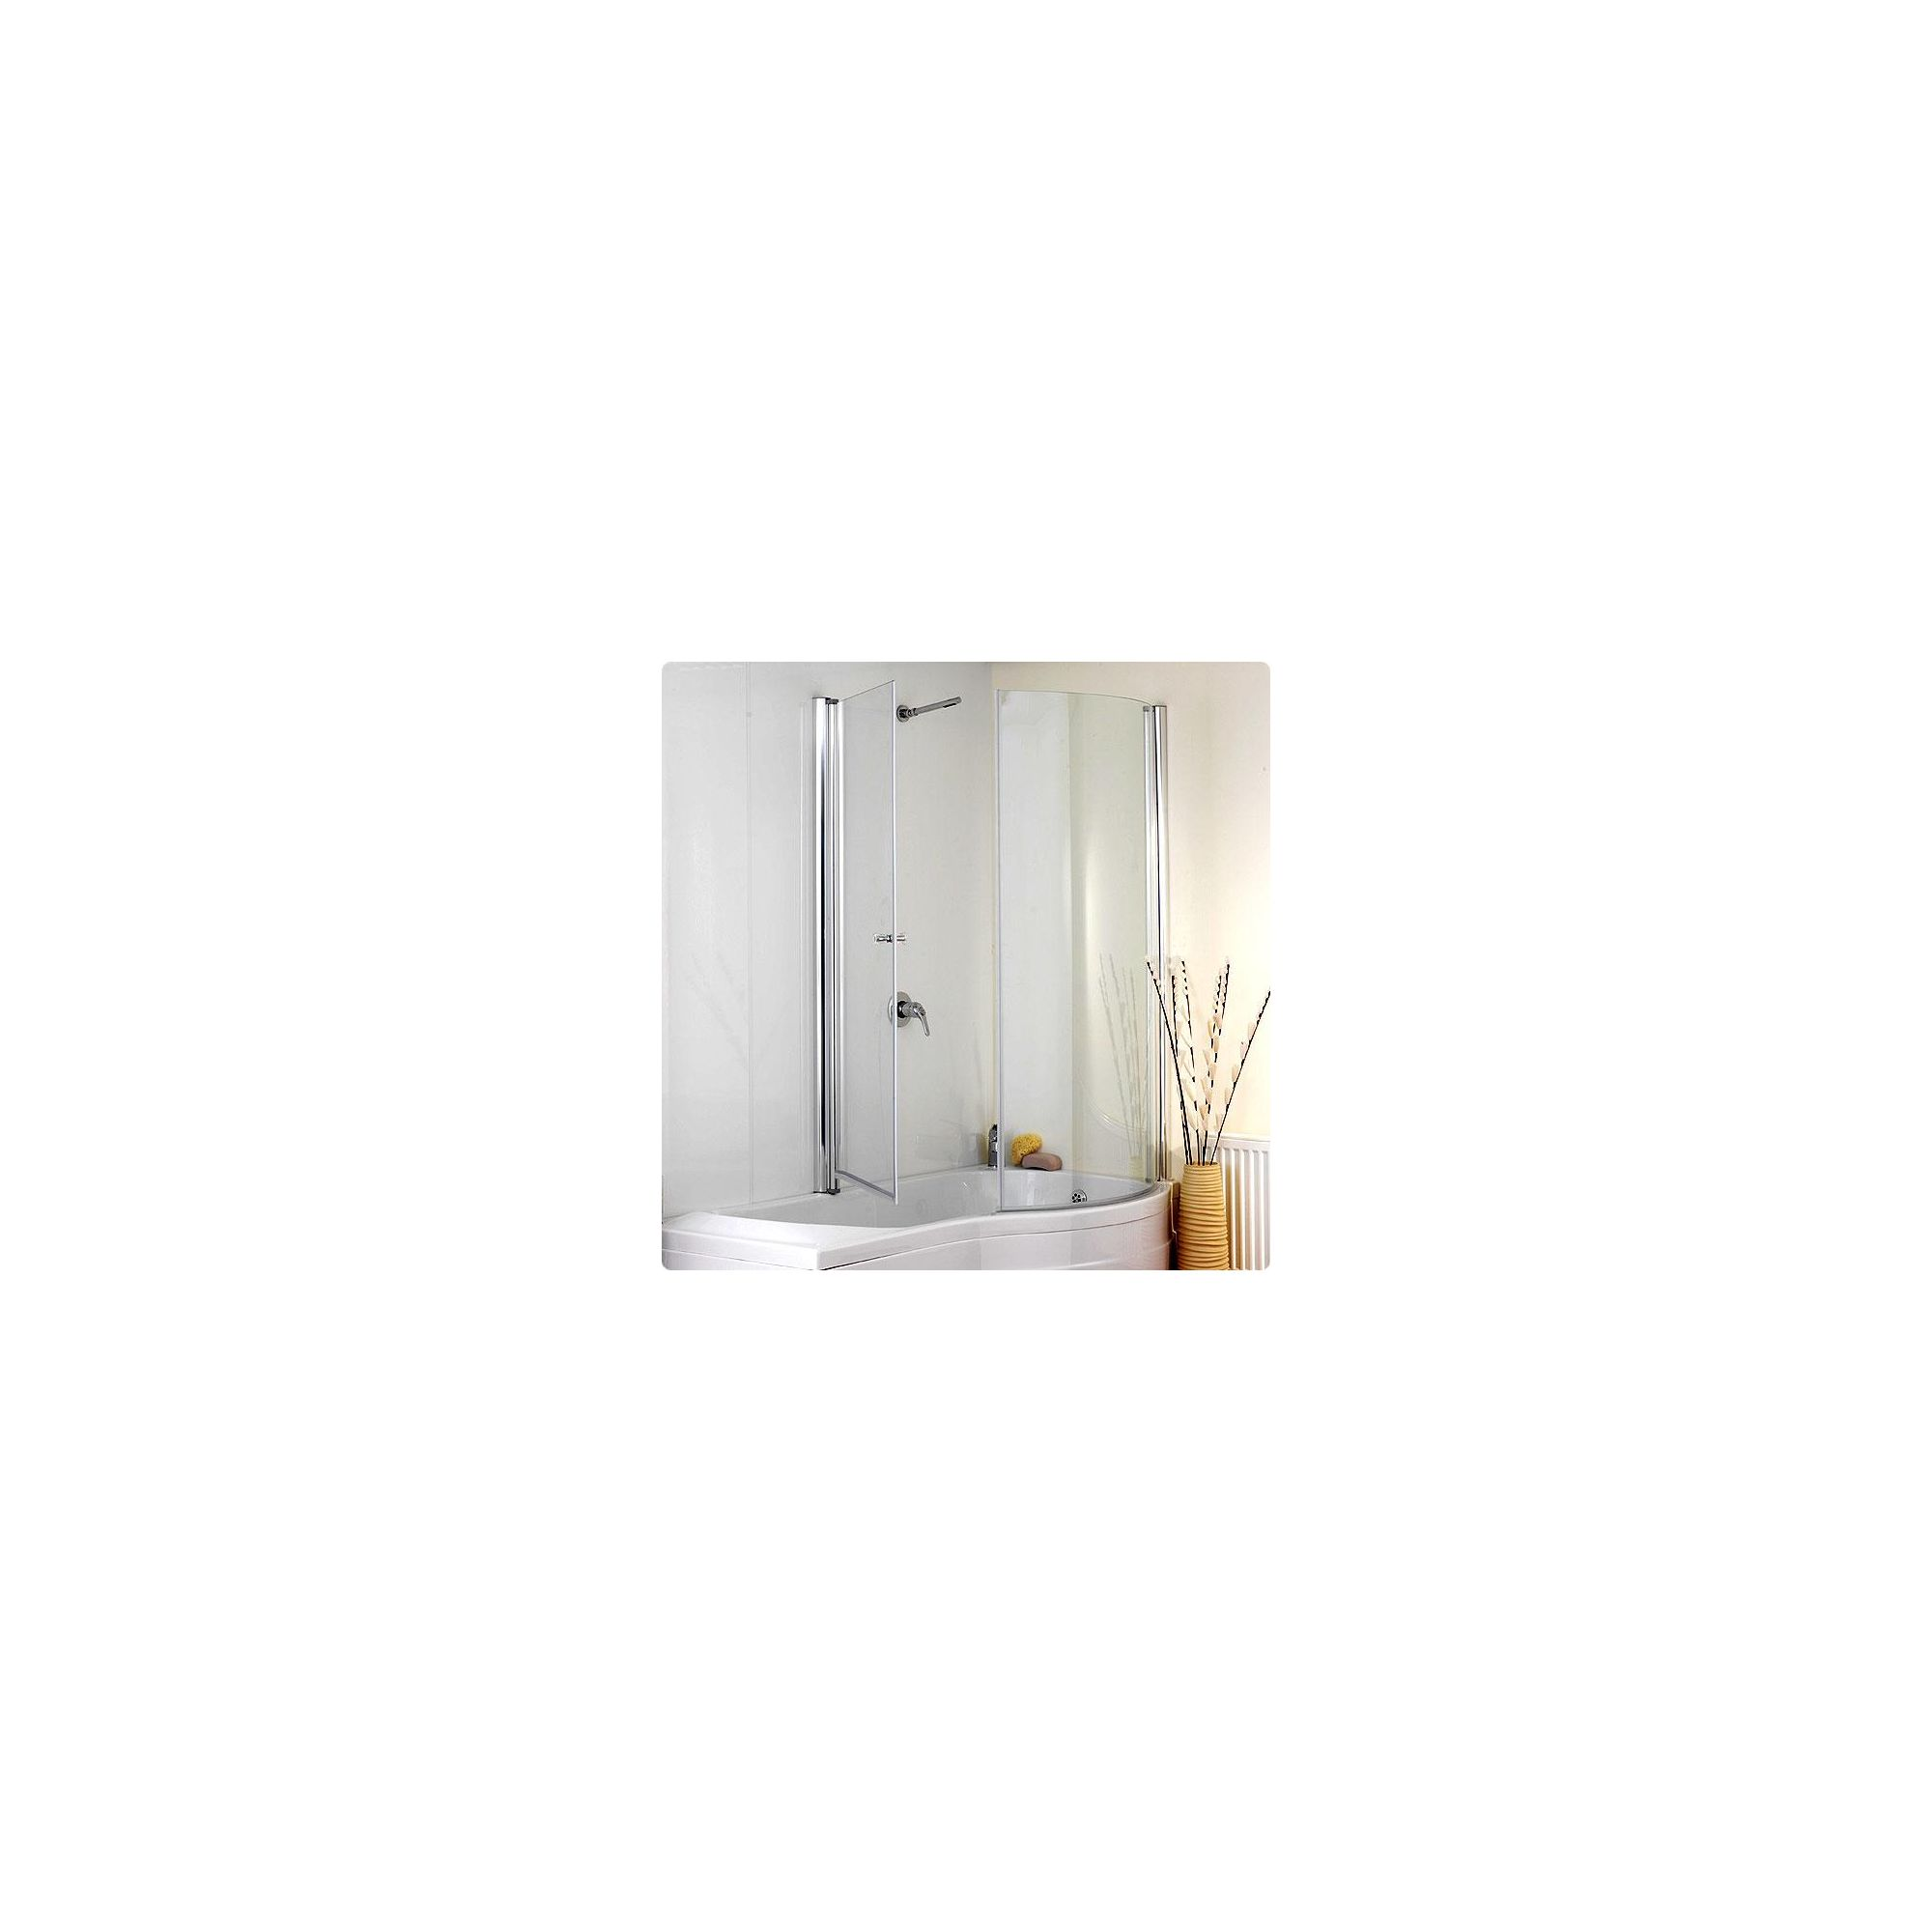 Duchy JESSICA Curved Showerbath Bath Panel withBath Screen RIGHT HANDED at Tesco Direct